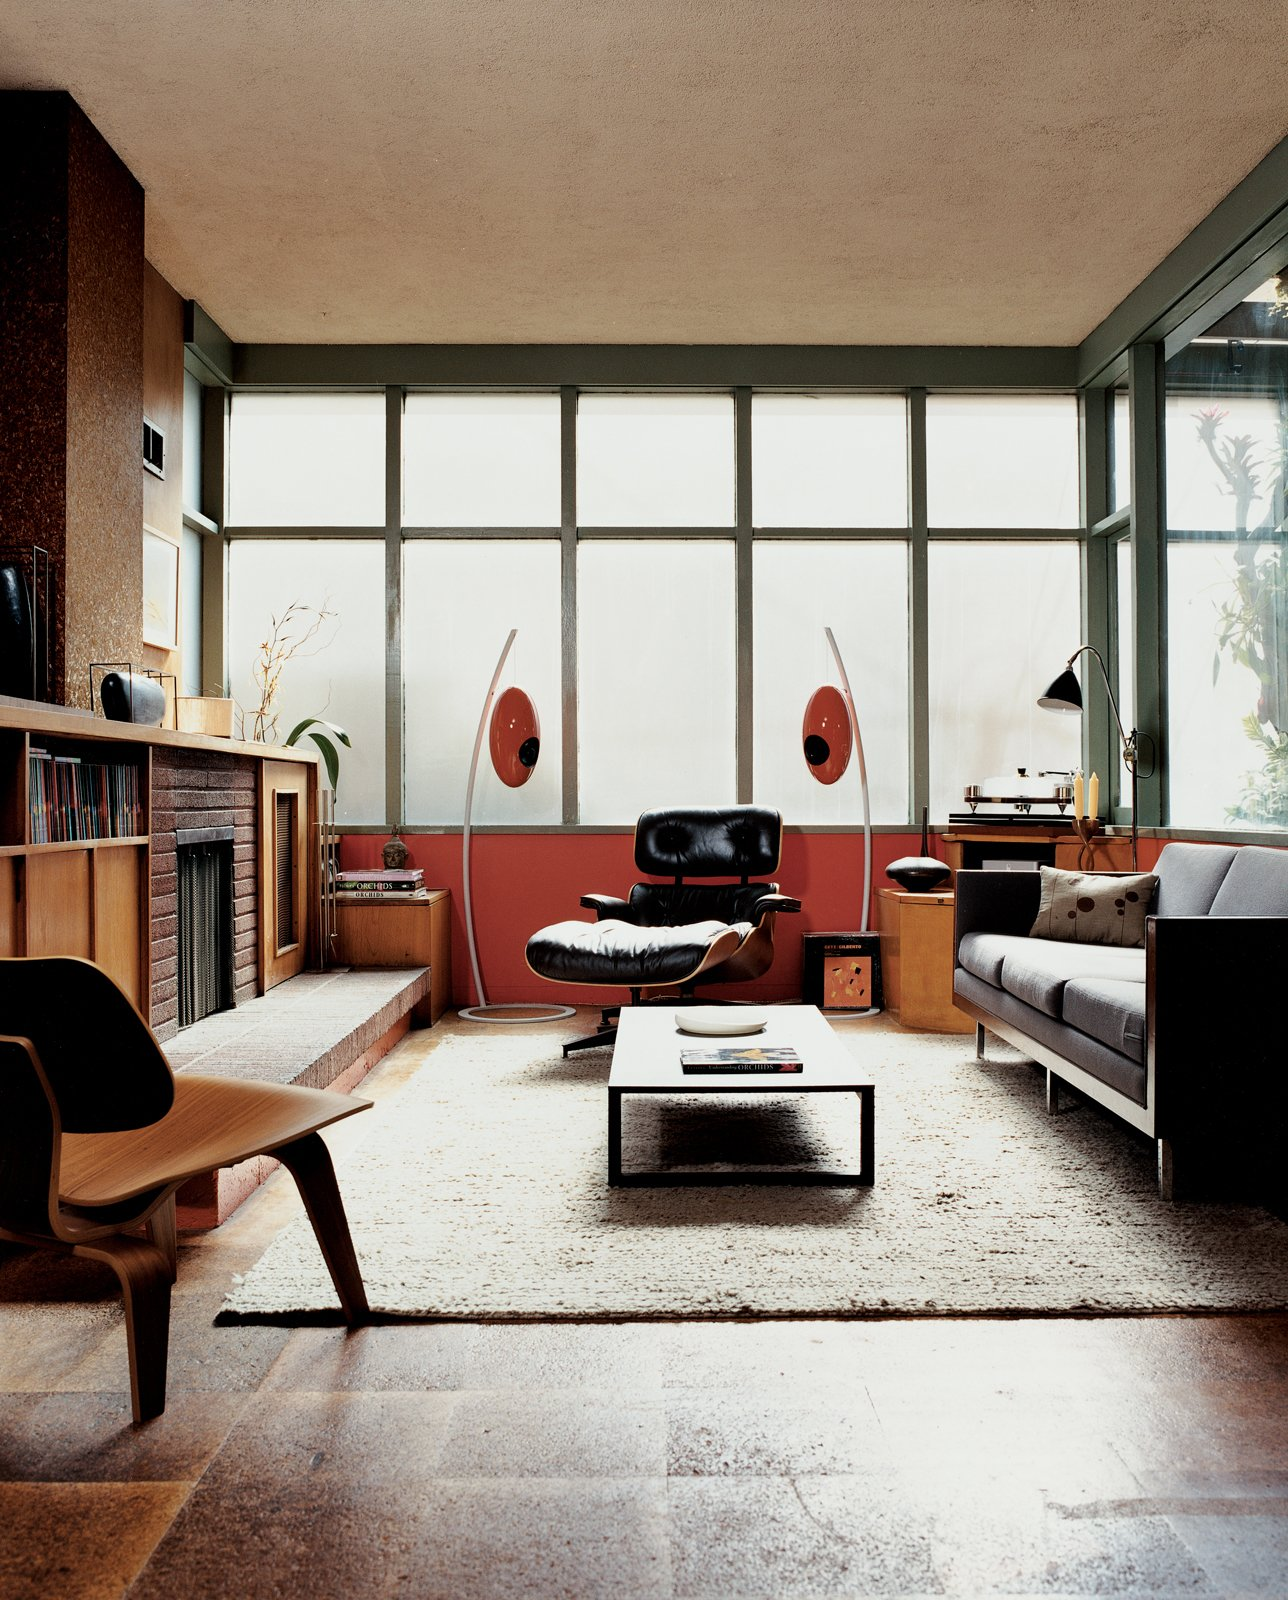 #midcenturymodern #Eames #HermanMiller #lounge #chair #livingrooms #U-vola #speakers #EliteAudioSystems #GretchenRice #KevinFarnham Tagged: Living Room, Rug Floor, Coffee Tables, Standard Layout Fireplace, Sofa, Recliner, Lamps, Ottomans, Chair, End Tables, and Floor Lighting.  Photo 32 of 54 in Eames Lounge Chair Porn